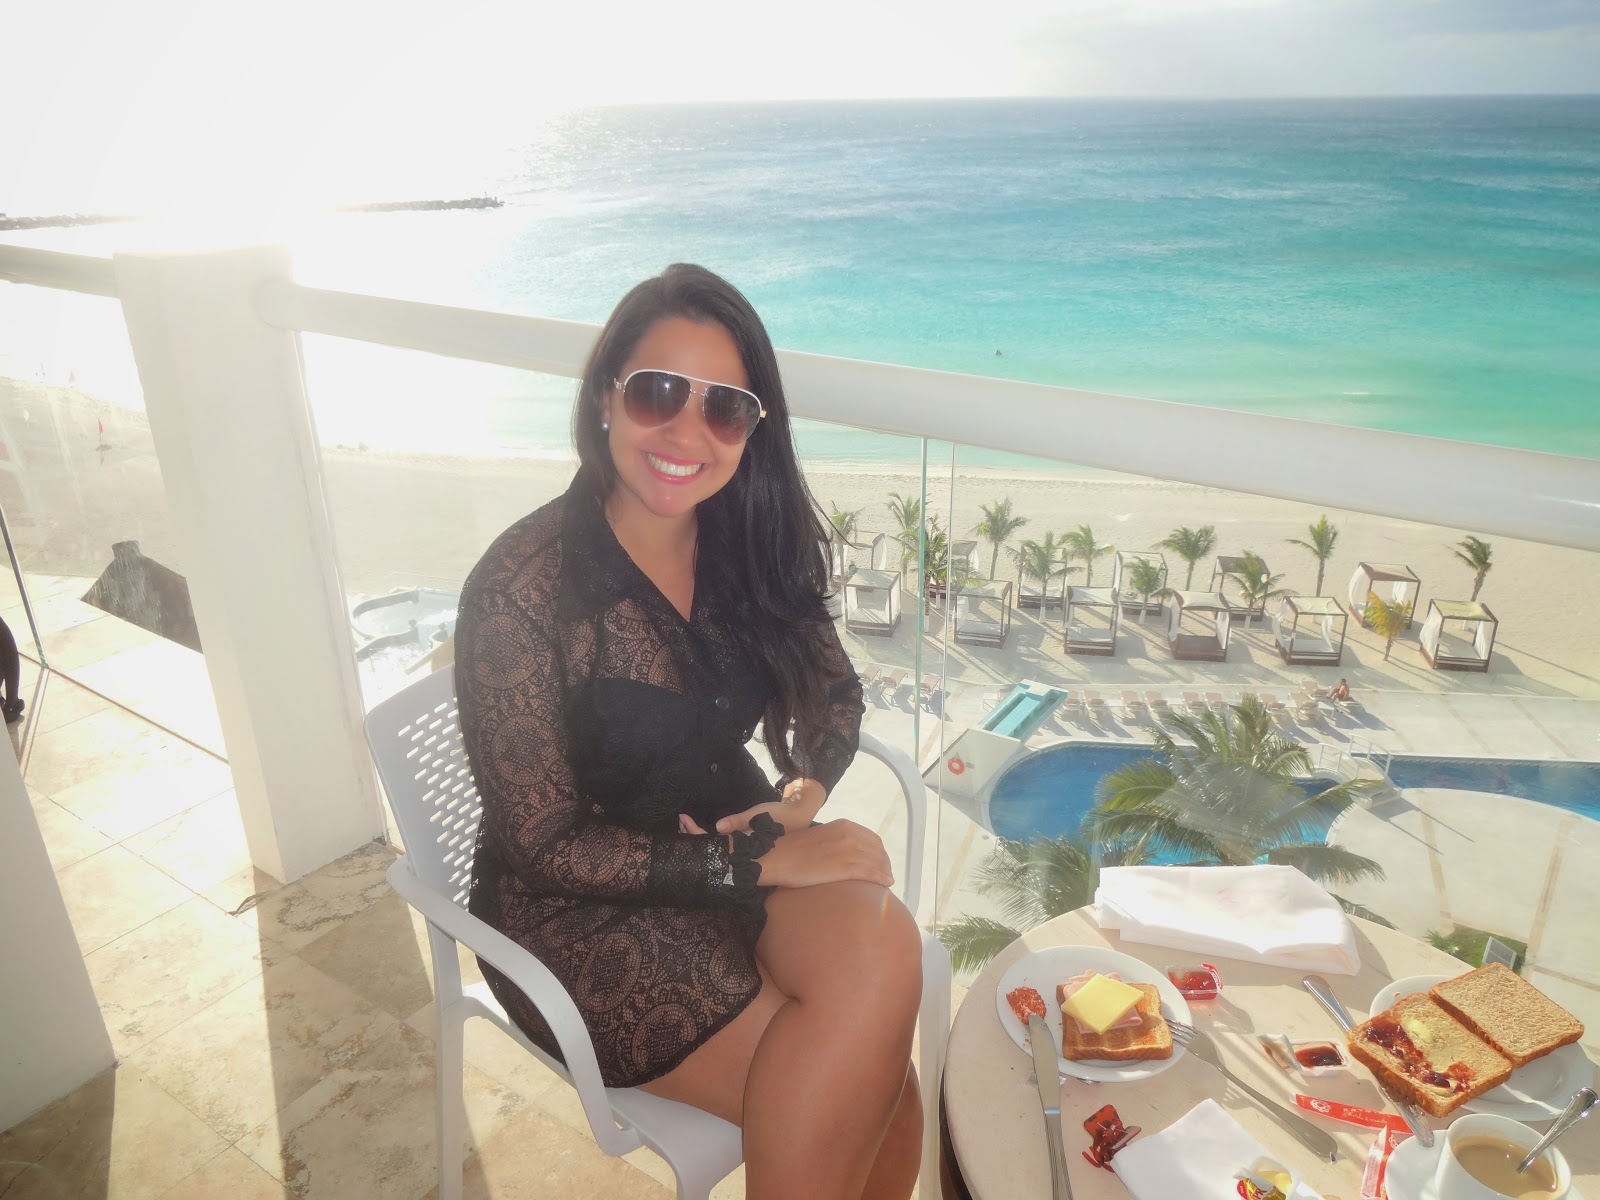 cafe-da-manha no resort em Cancun